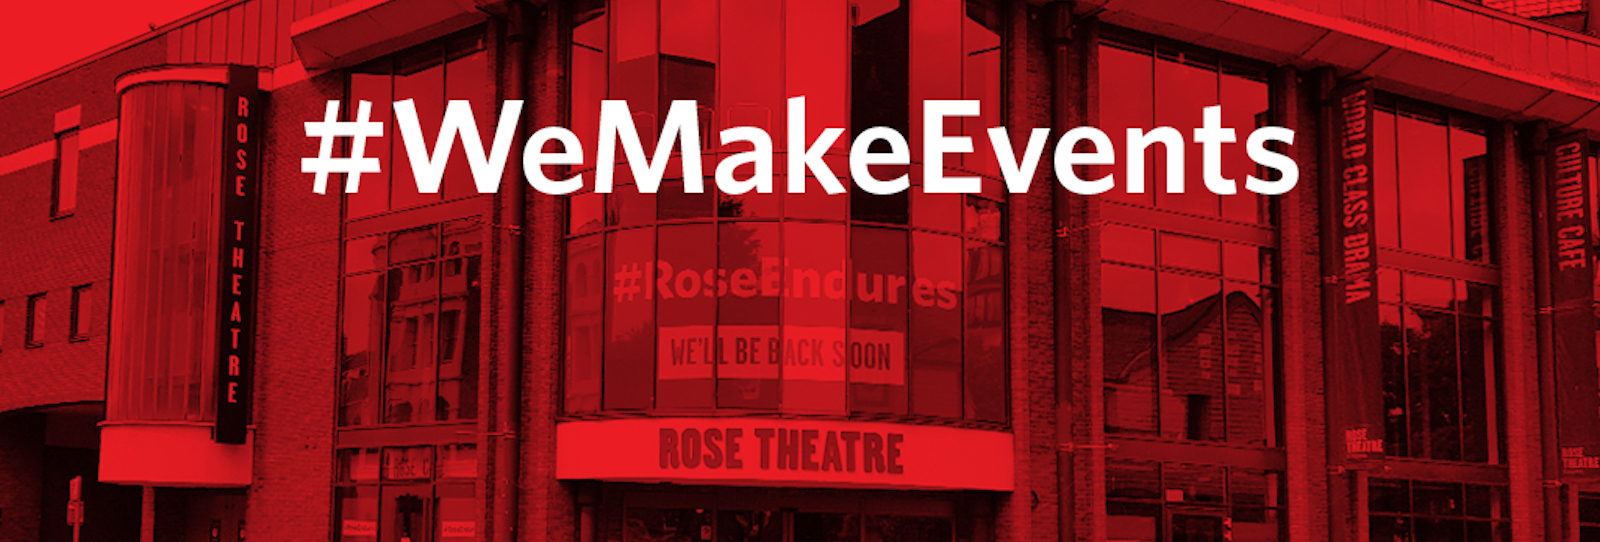 Rose Theatre joins #WeMakeEvents Red Alert campaign